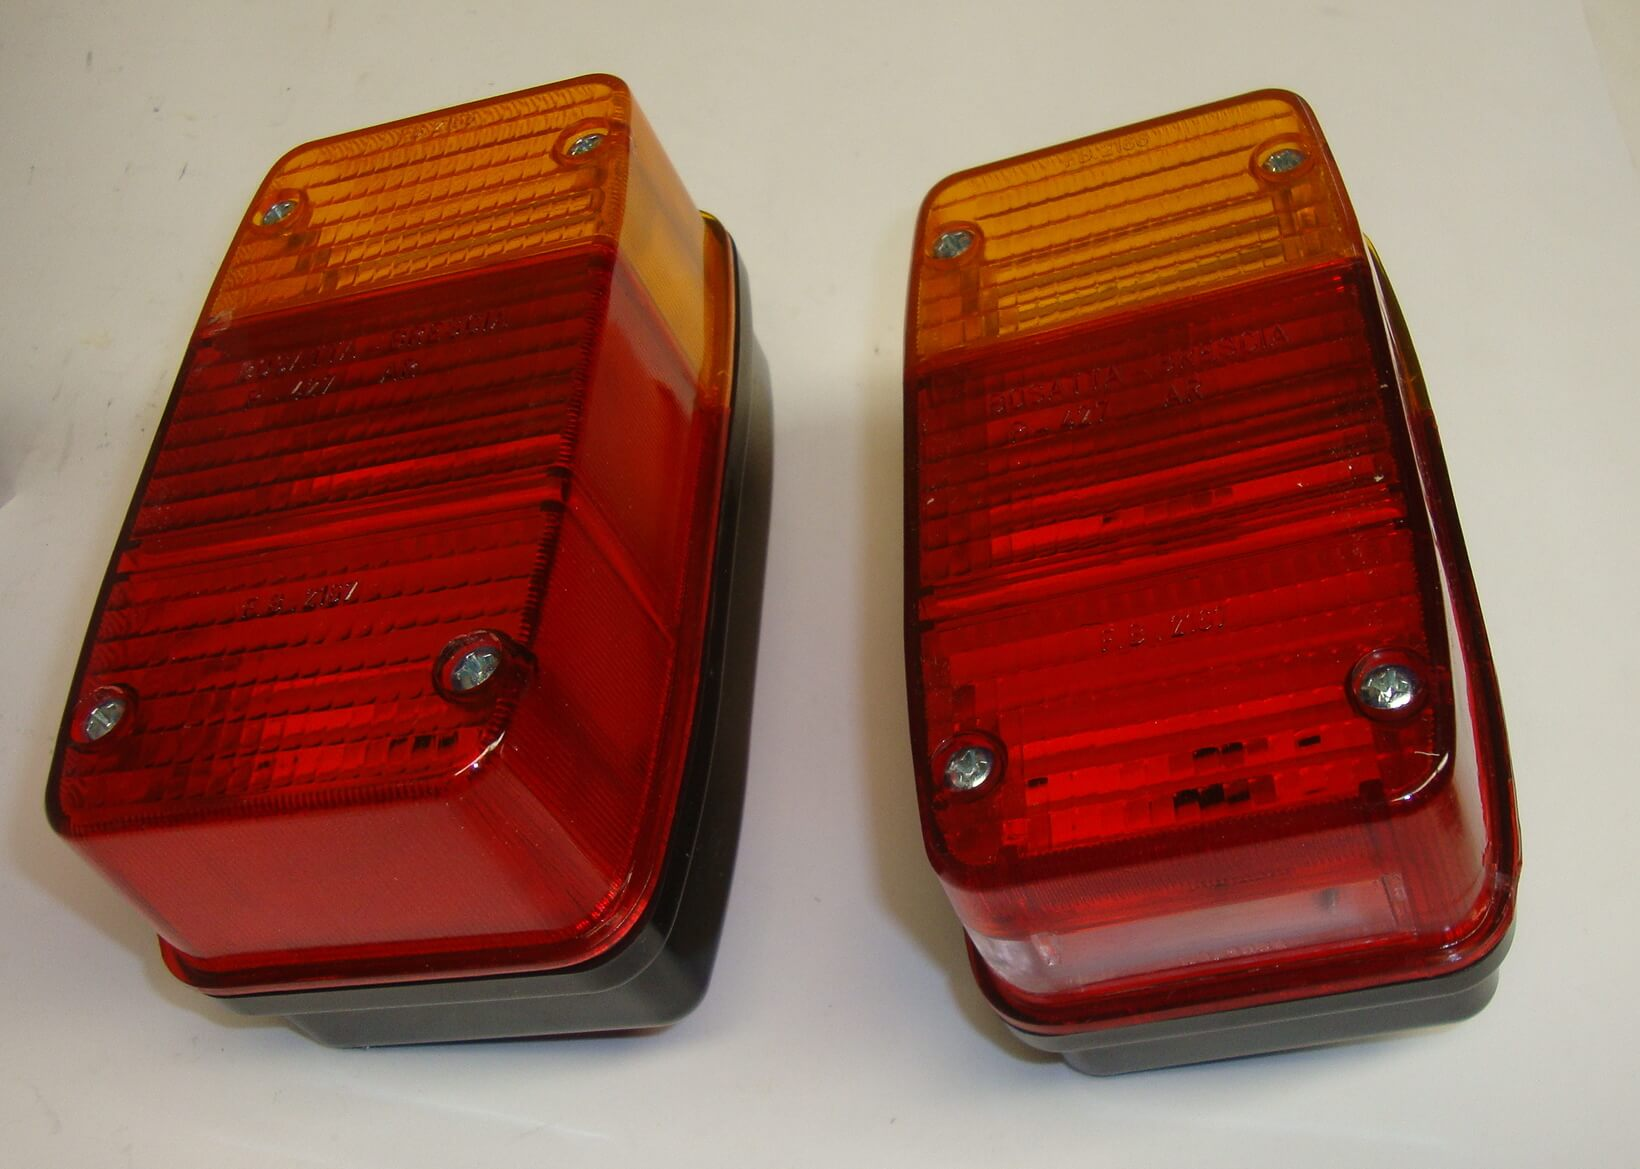 Taillights, Ape 400 / P 401 - 501 - 601 - 601V / MP 500 - 600 / MPV 600 / Ape Car P2